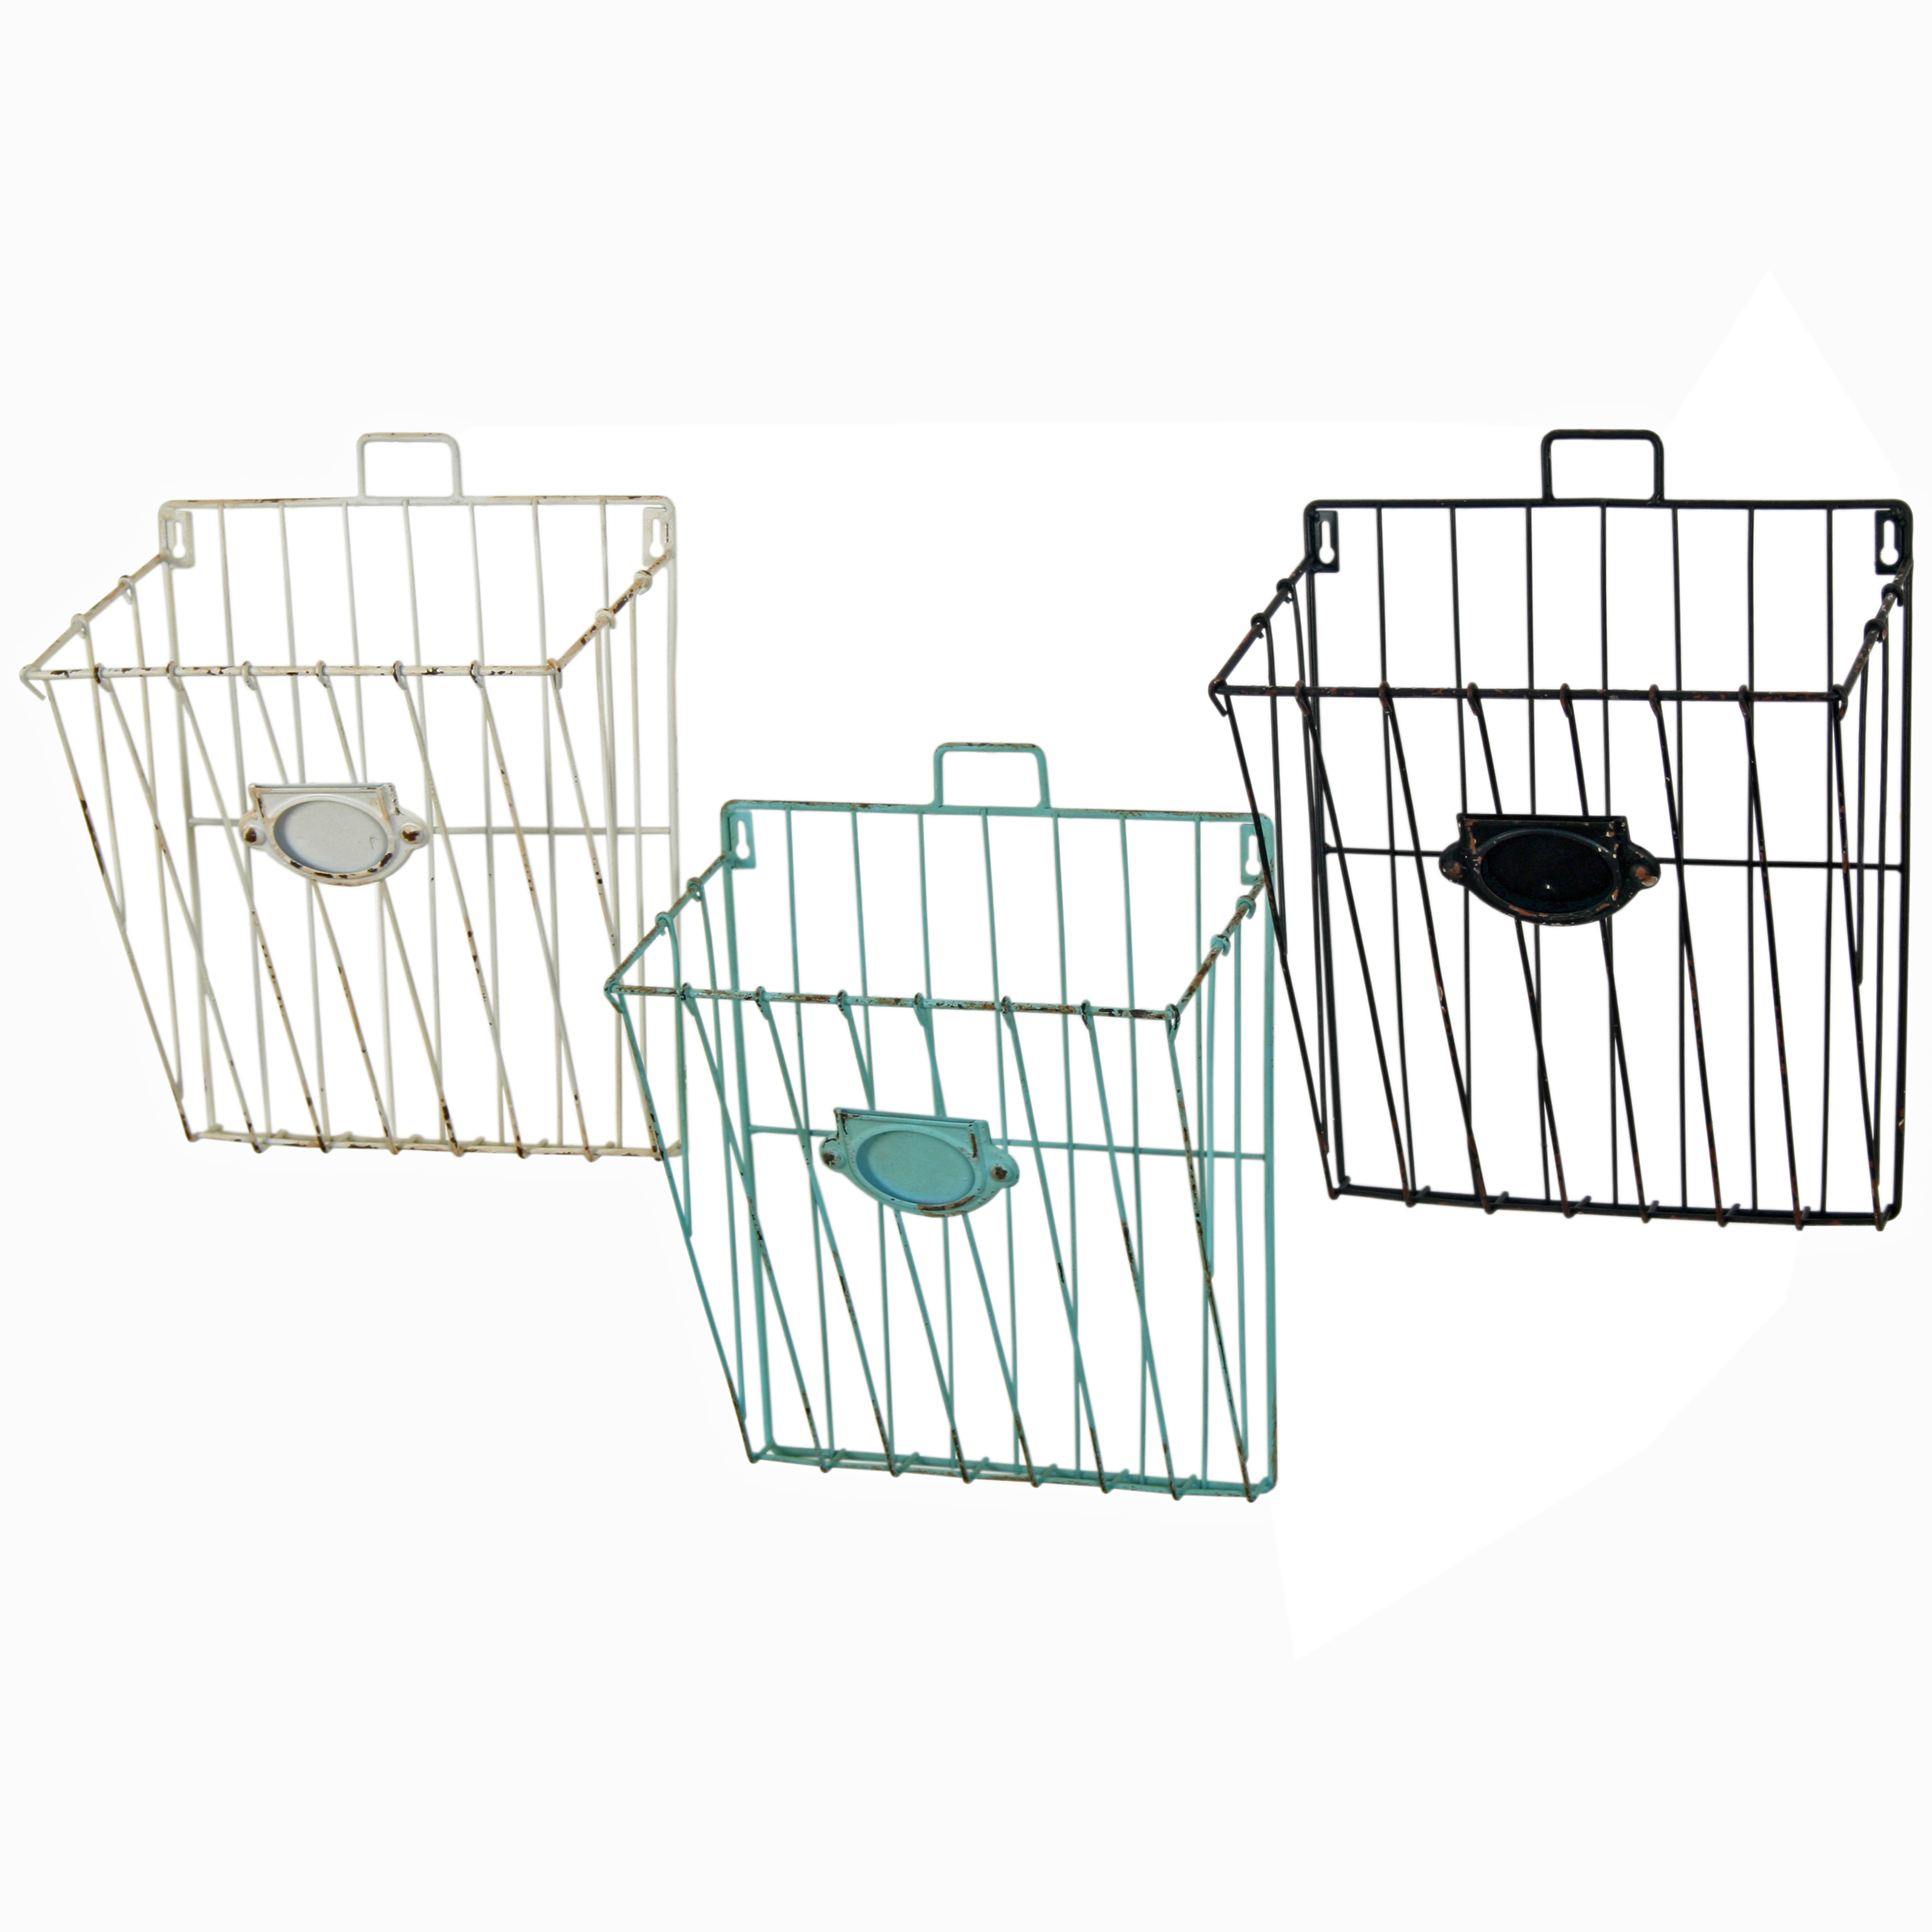 6defcf7c719 Set of 3 Wall Mounted Wire Storage Baskets Mail   Documents ...